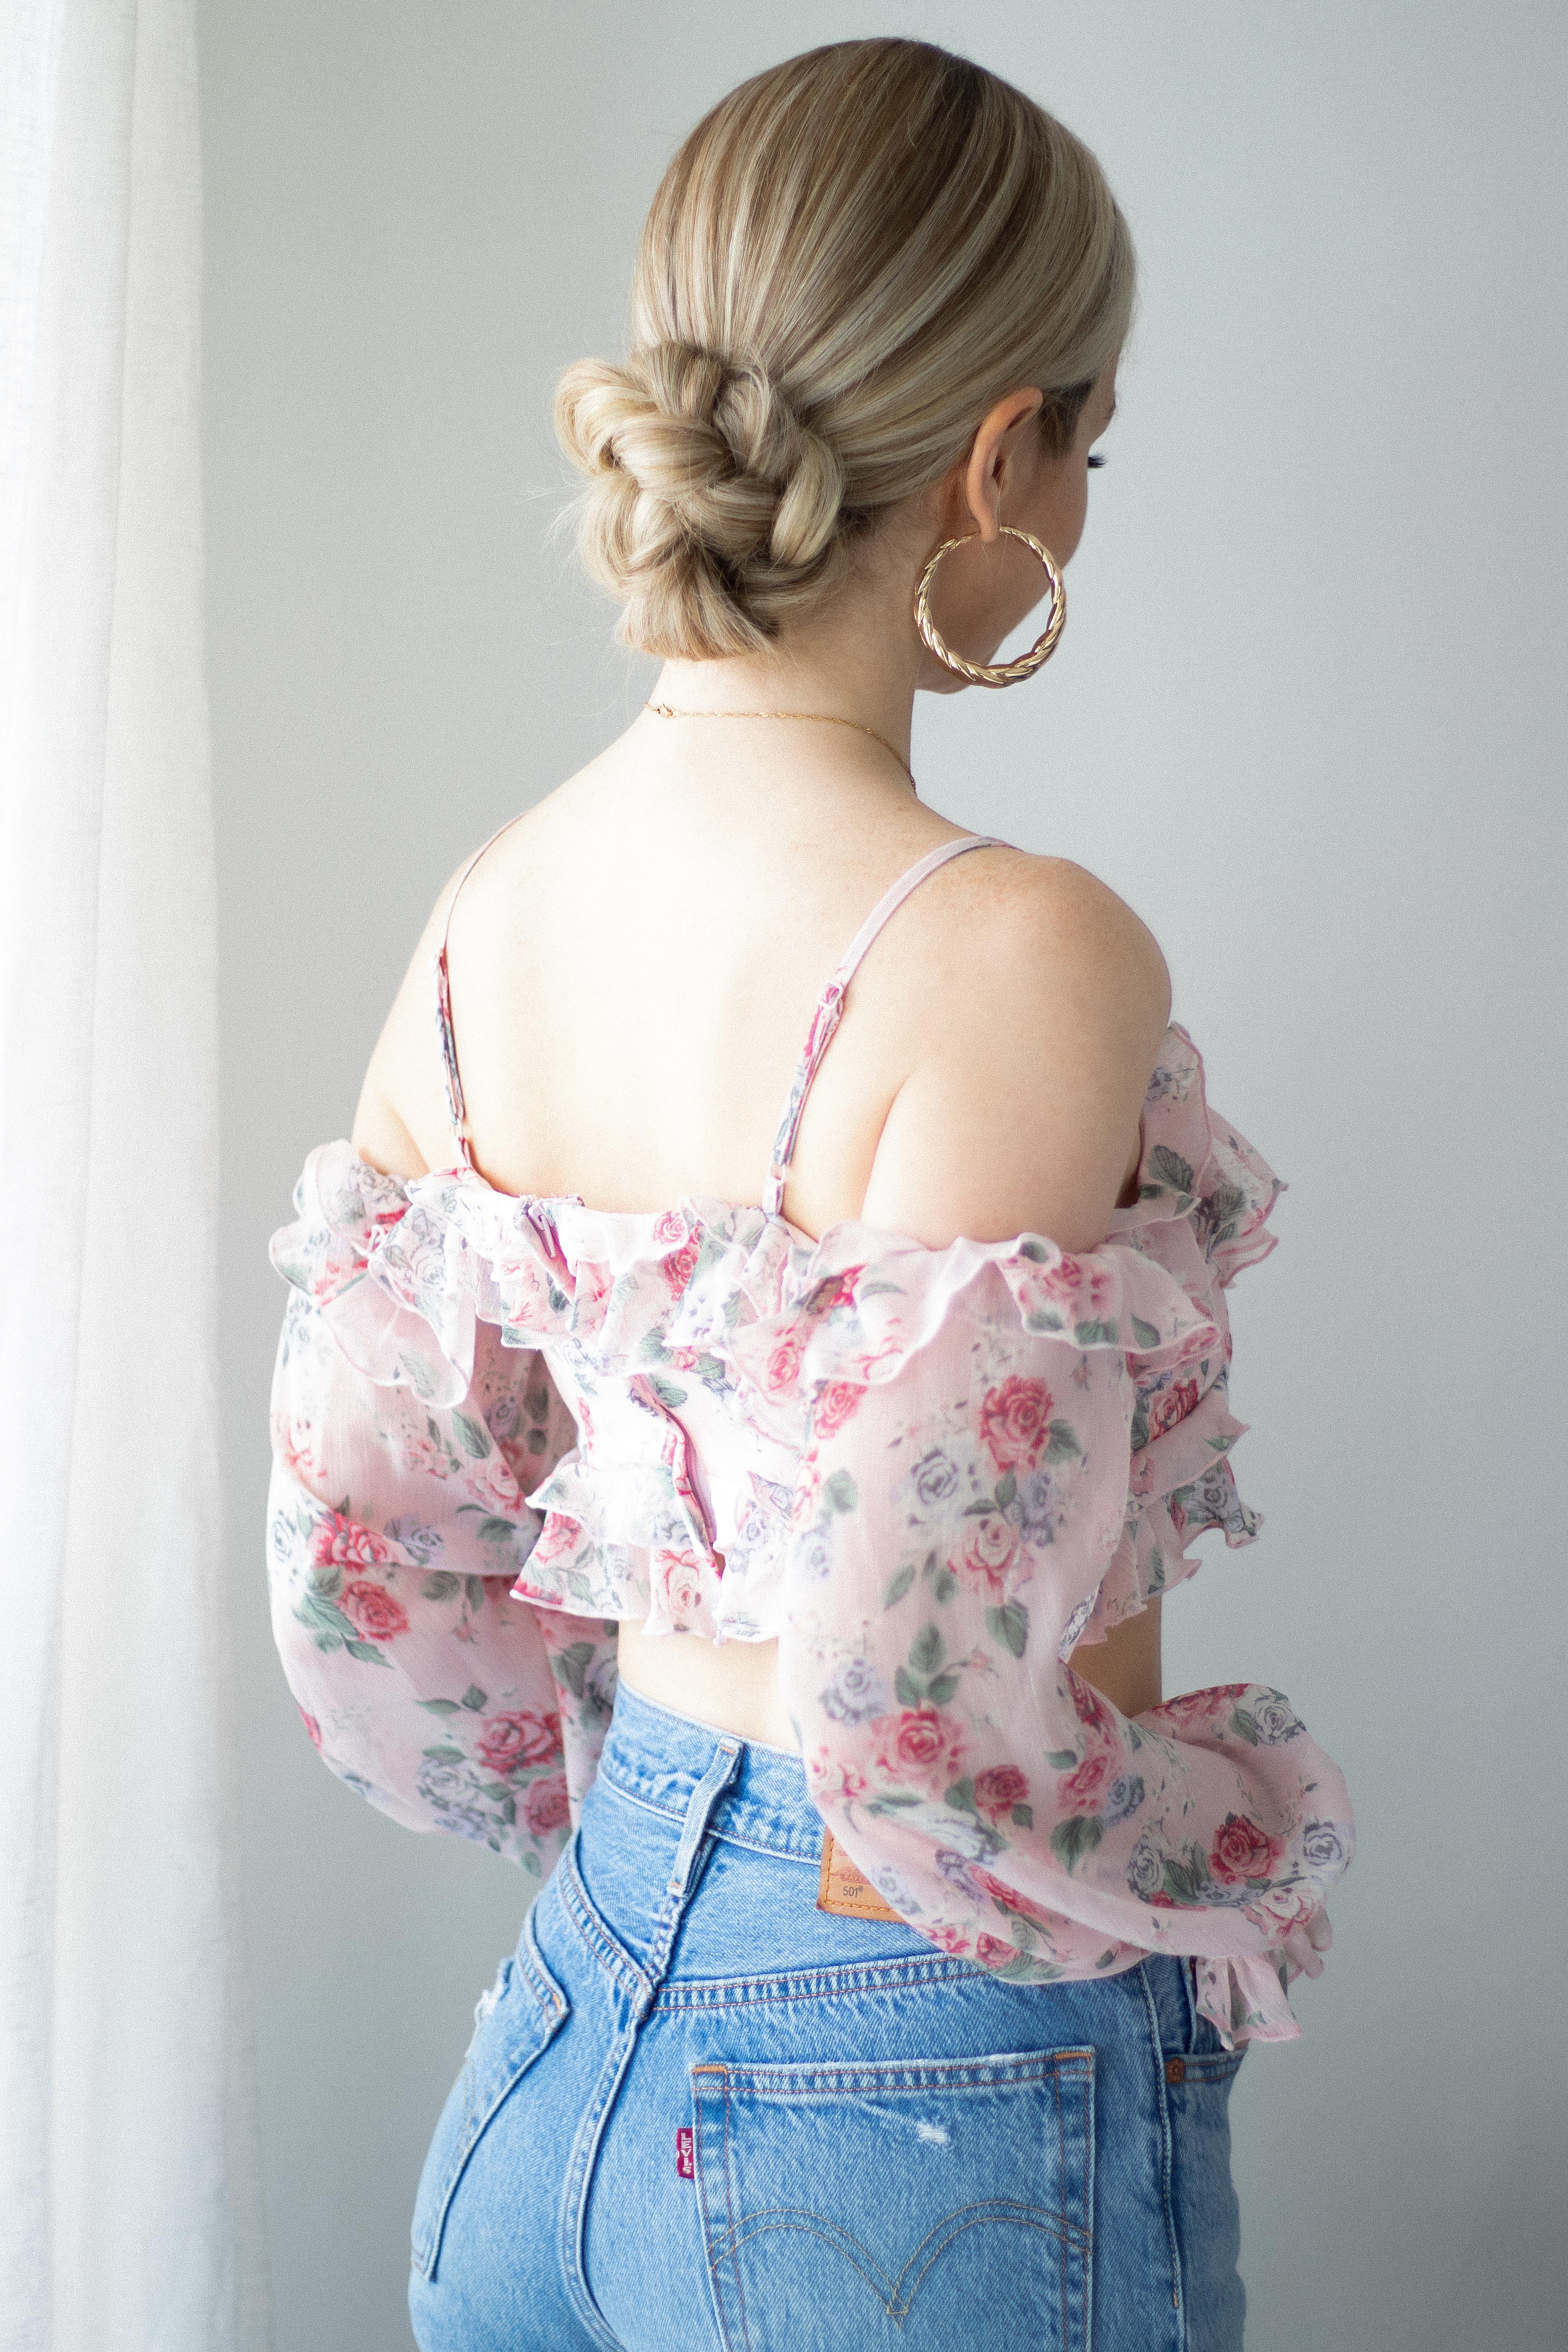 3 BEAUTIFUL EASY HAIRSTYLES FOR SUMMER (with tutorial) | www.alexgaboury.com